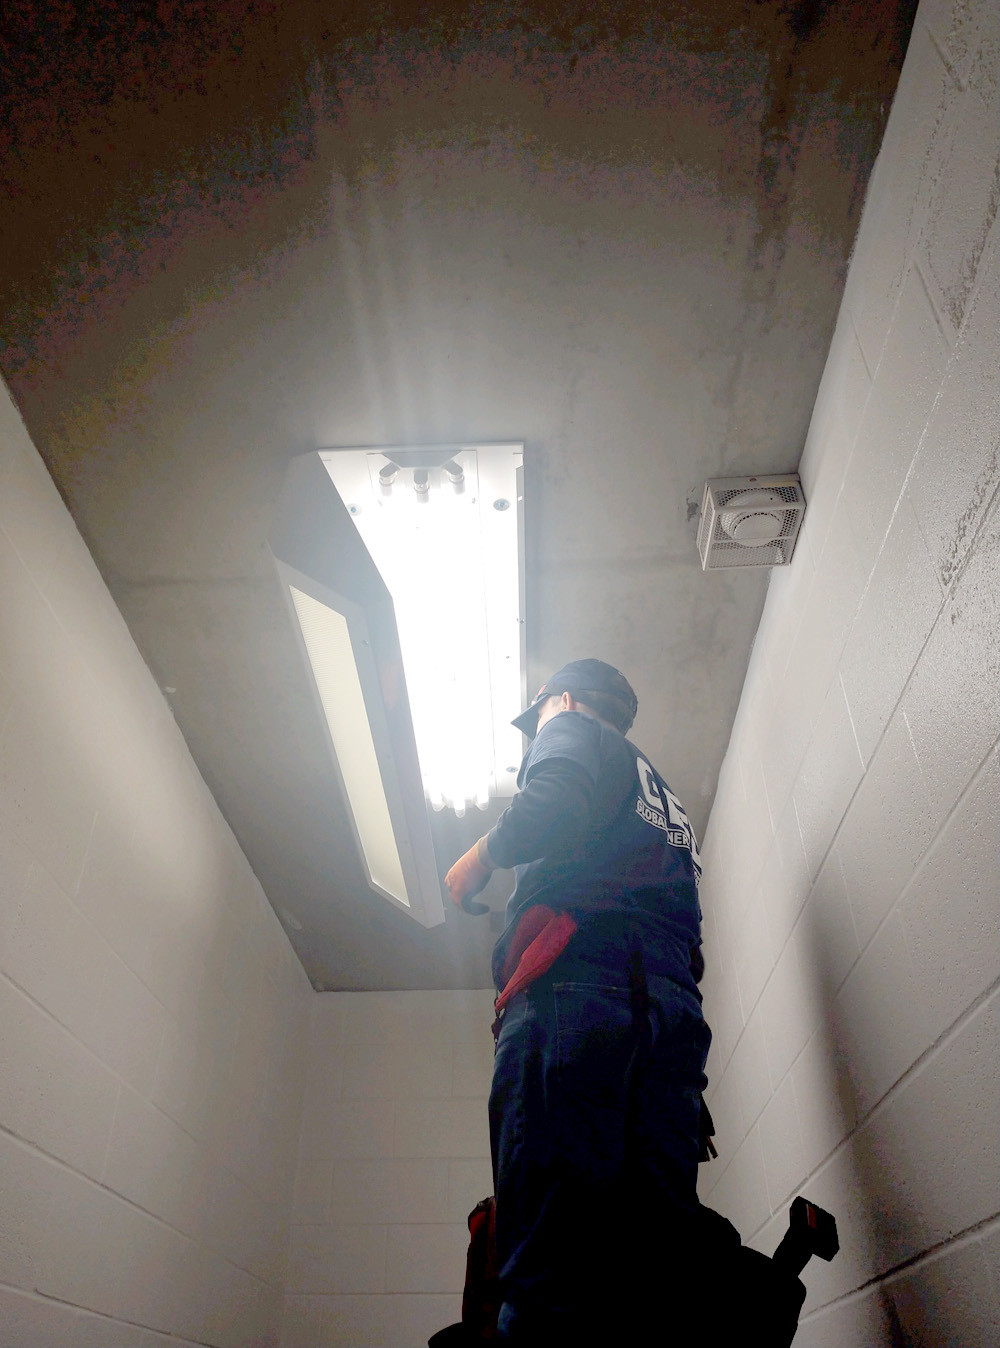 UPGRADES at the Bradley County Sheriff's Office include energy-efficient LED lighting and HVAC units. Due to work on the upgrades, visitation of inmates will be temporarily shut down until Monday, March 19.